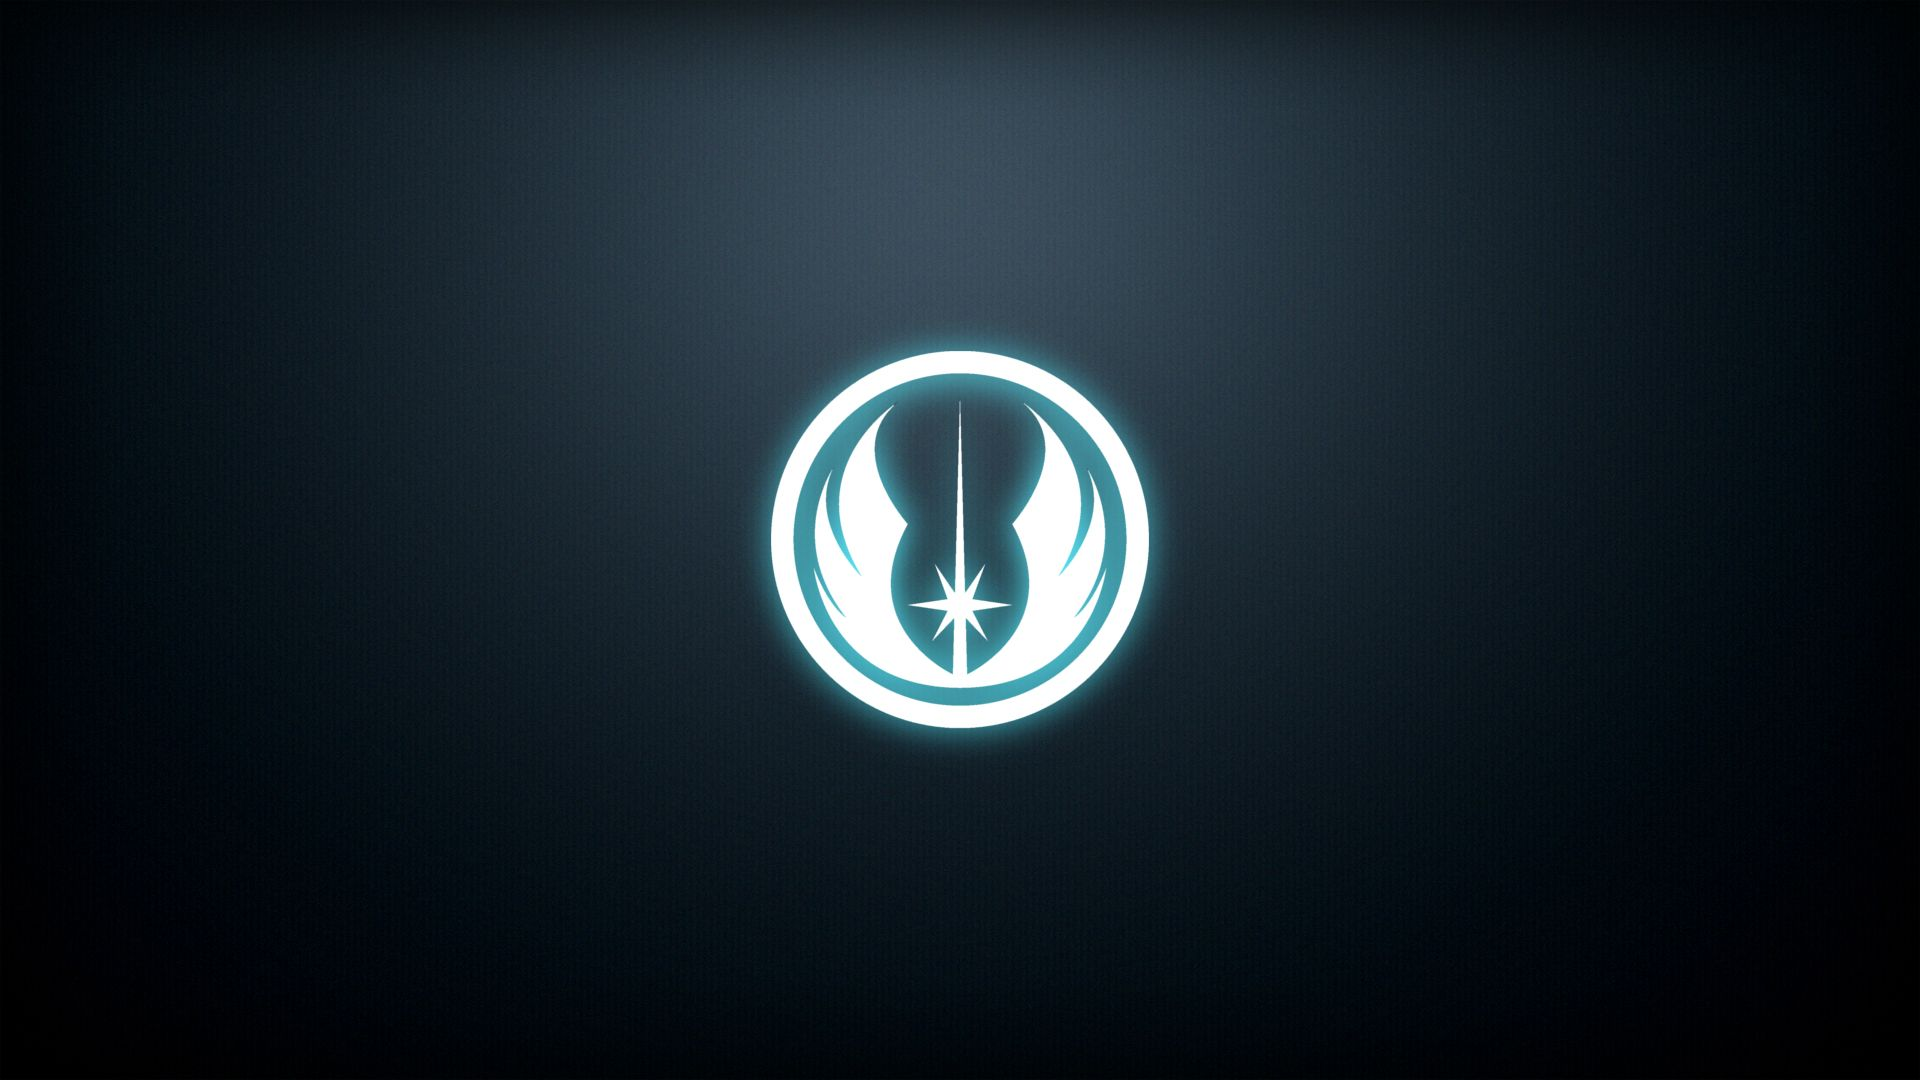 Star Wars Jedi Wallpapers - WallpaperSafari